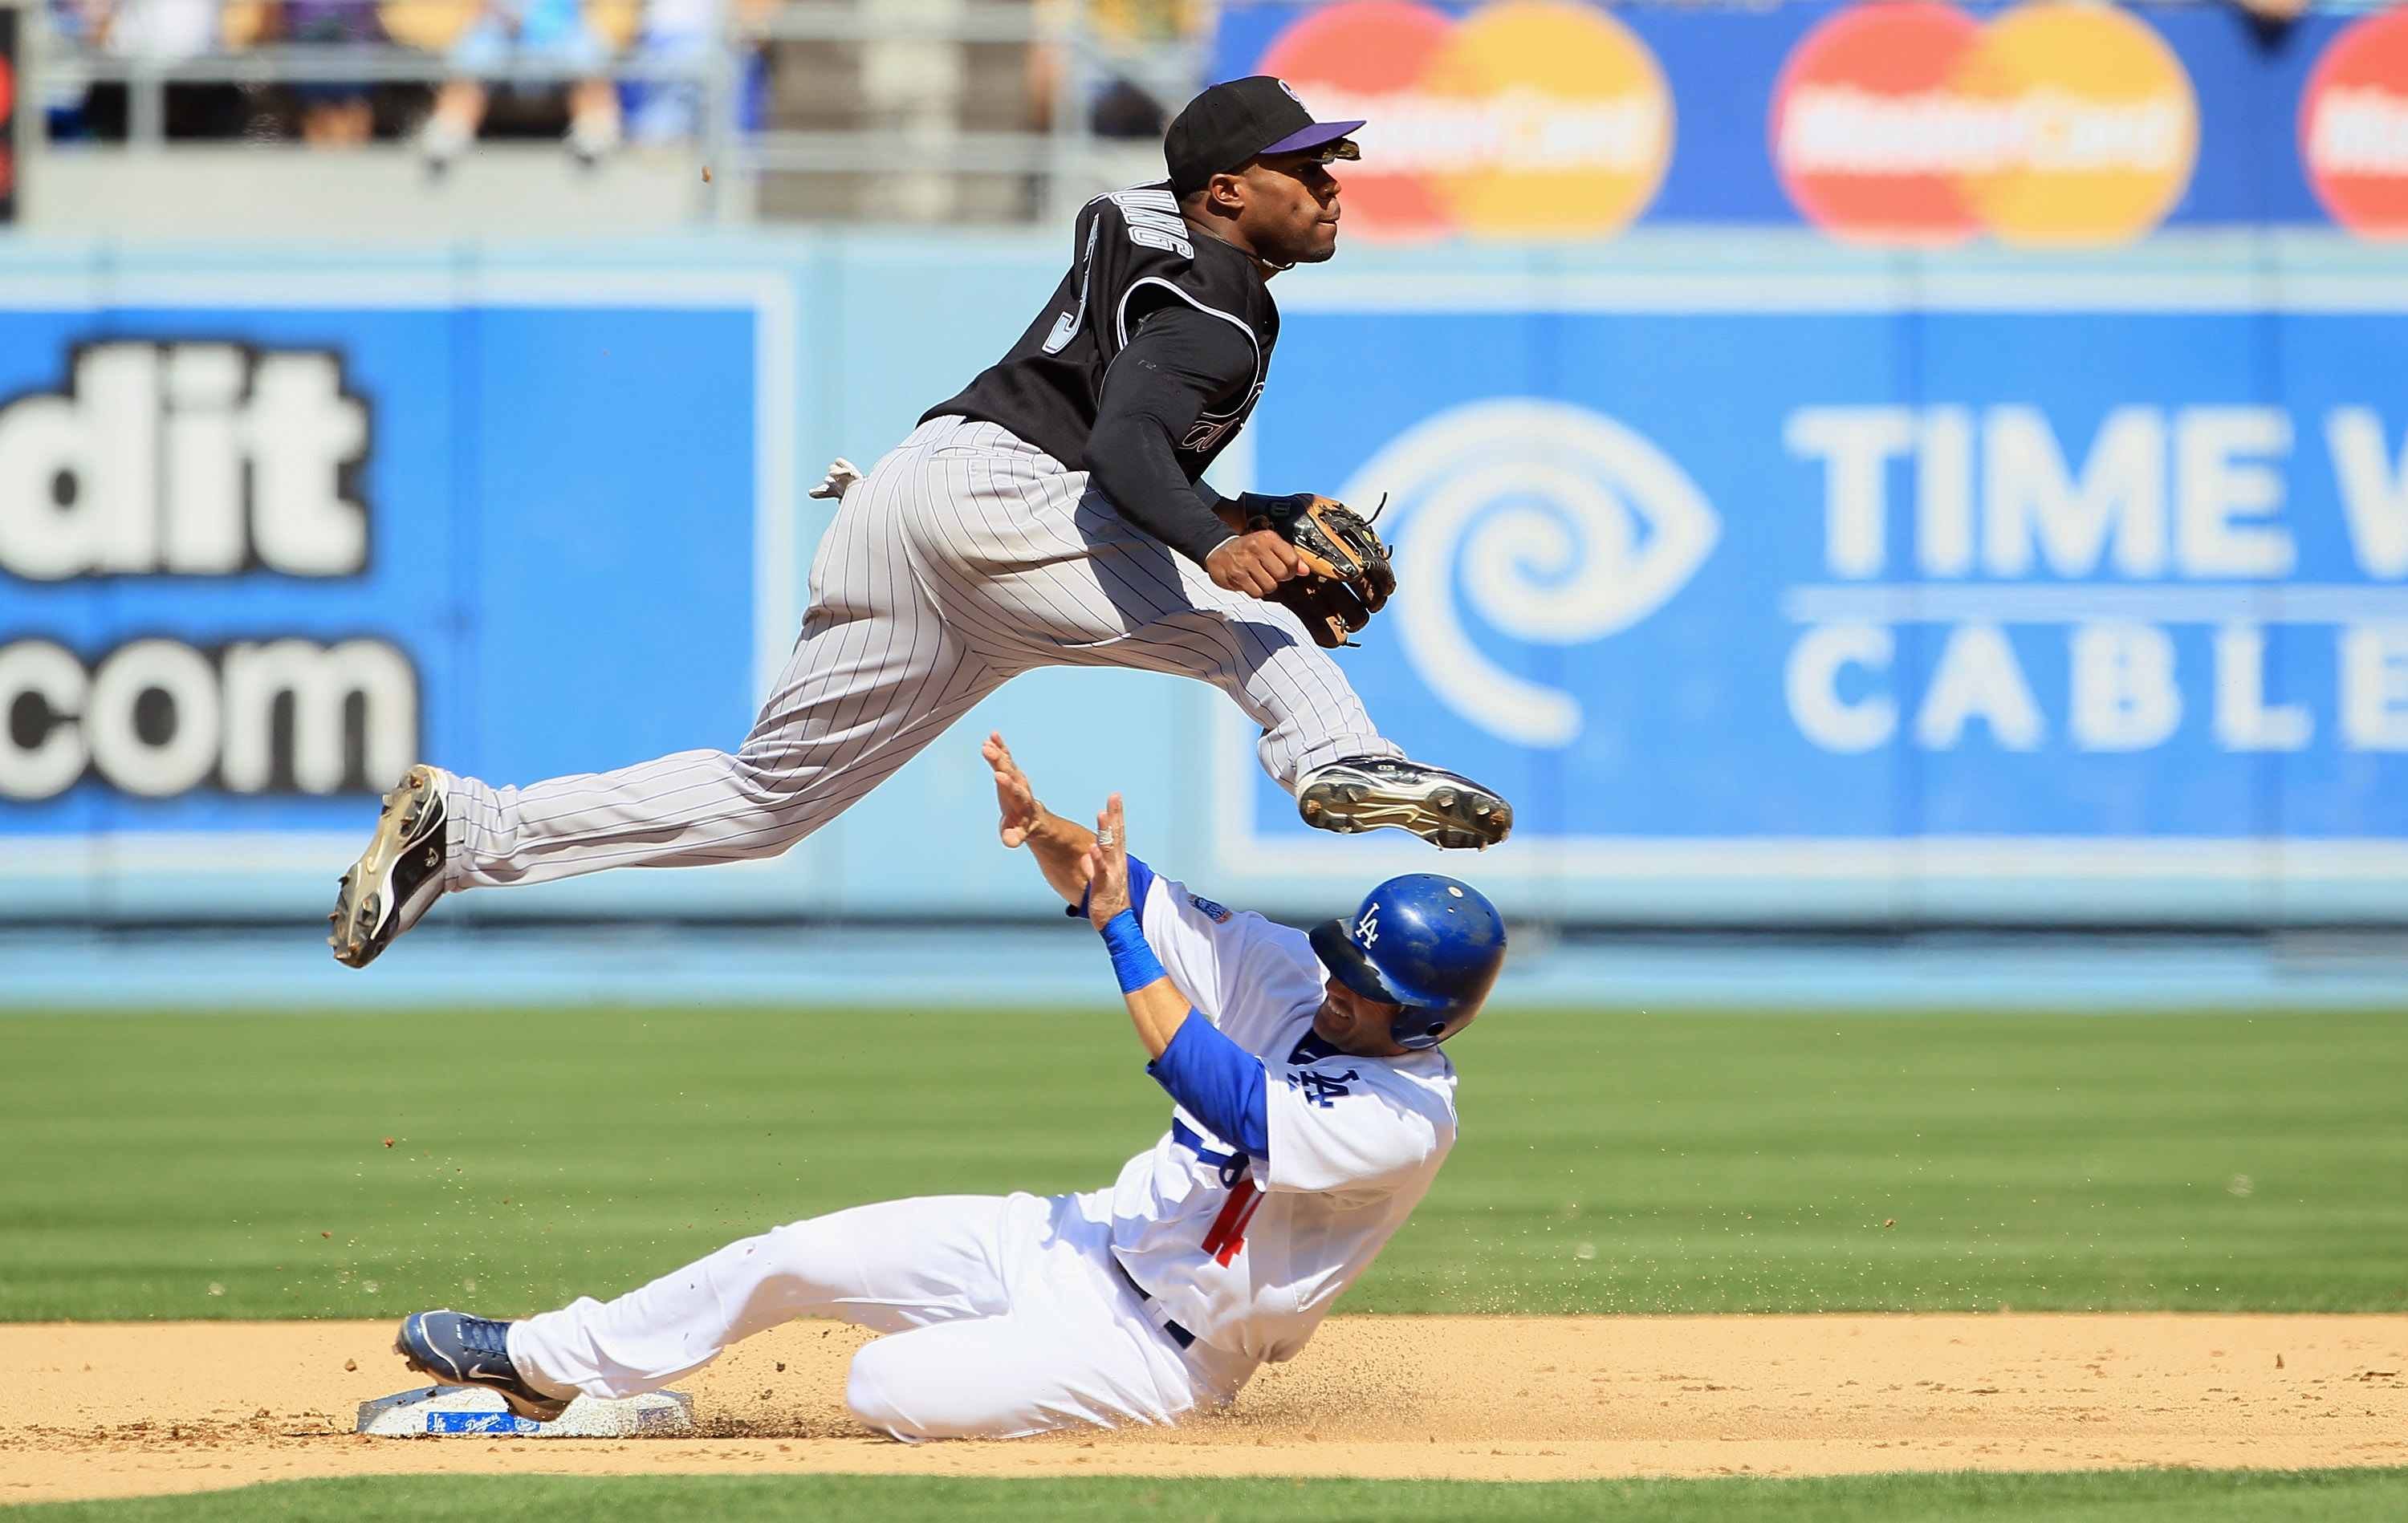 LOS ANGELES, CA - SEPTEMBER 18:  Second baseman Eric Young #3 of the Colorado Rockies jumps to avoid Jamey Carroll #14 of the Los Angeles Dodgers after forcing him out at second base in the fifth inning at Dodger Stadium on September 18, 2010 in Los Angel